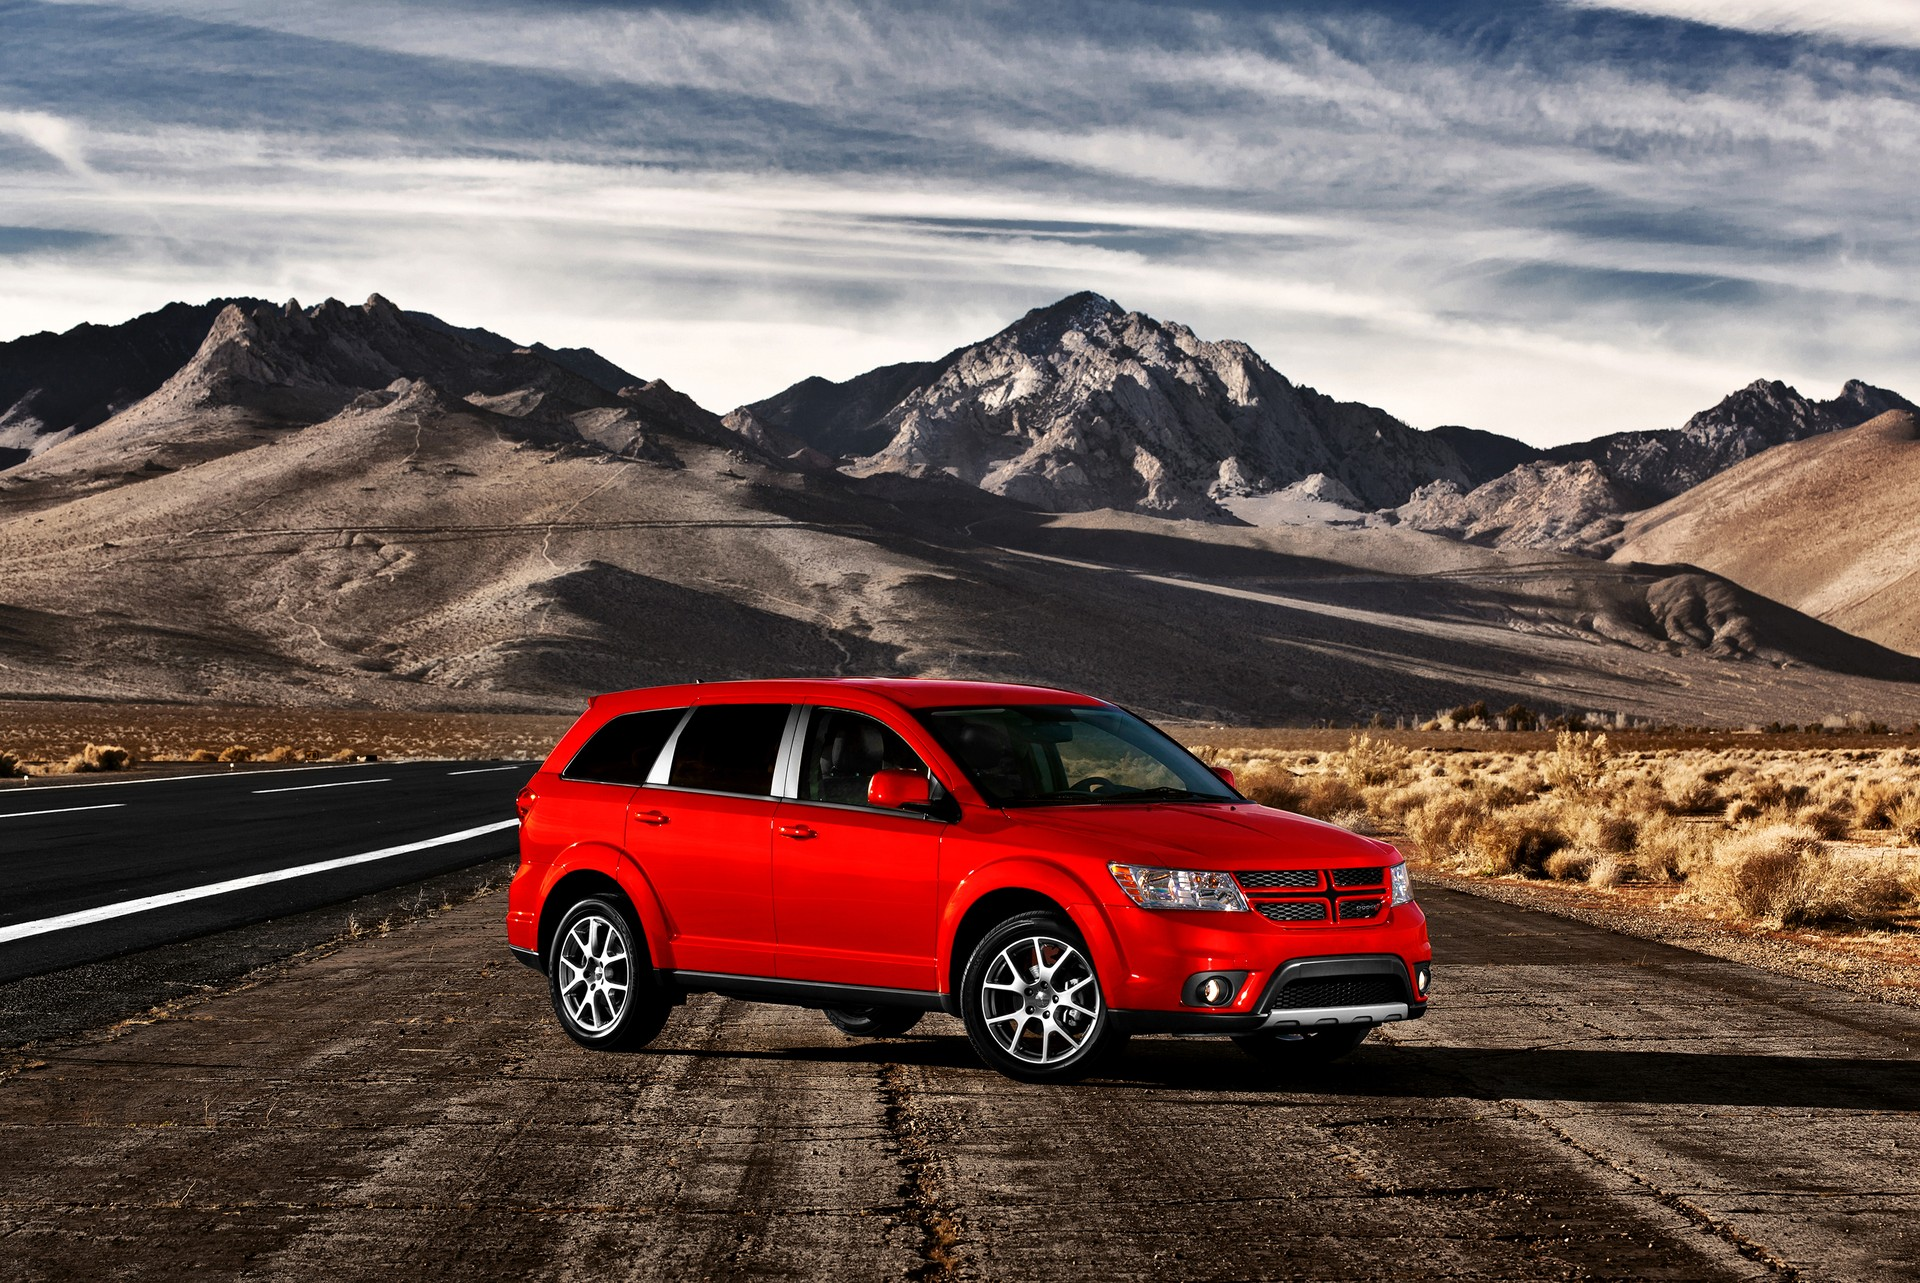 2017 Dodge Journey Recalled For Fire Risk